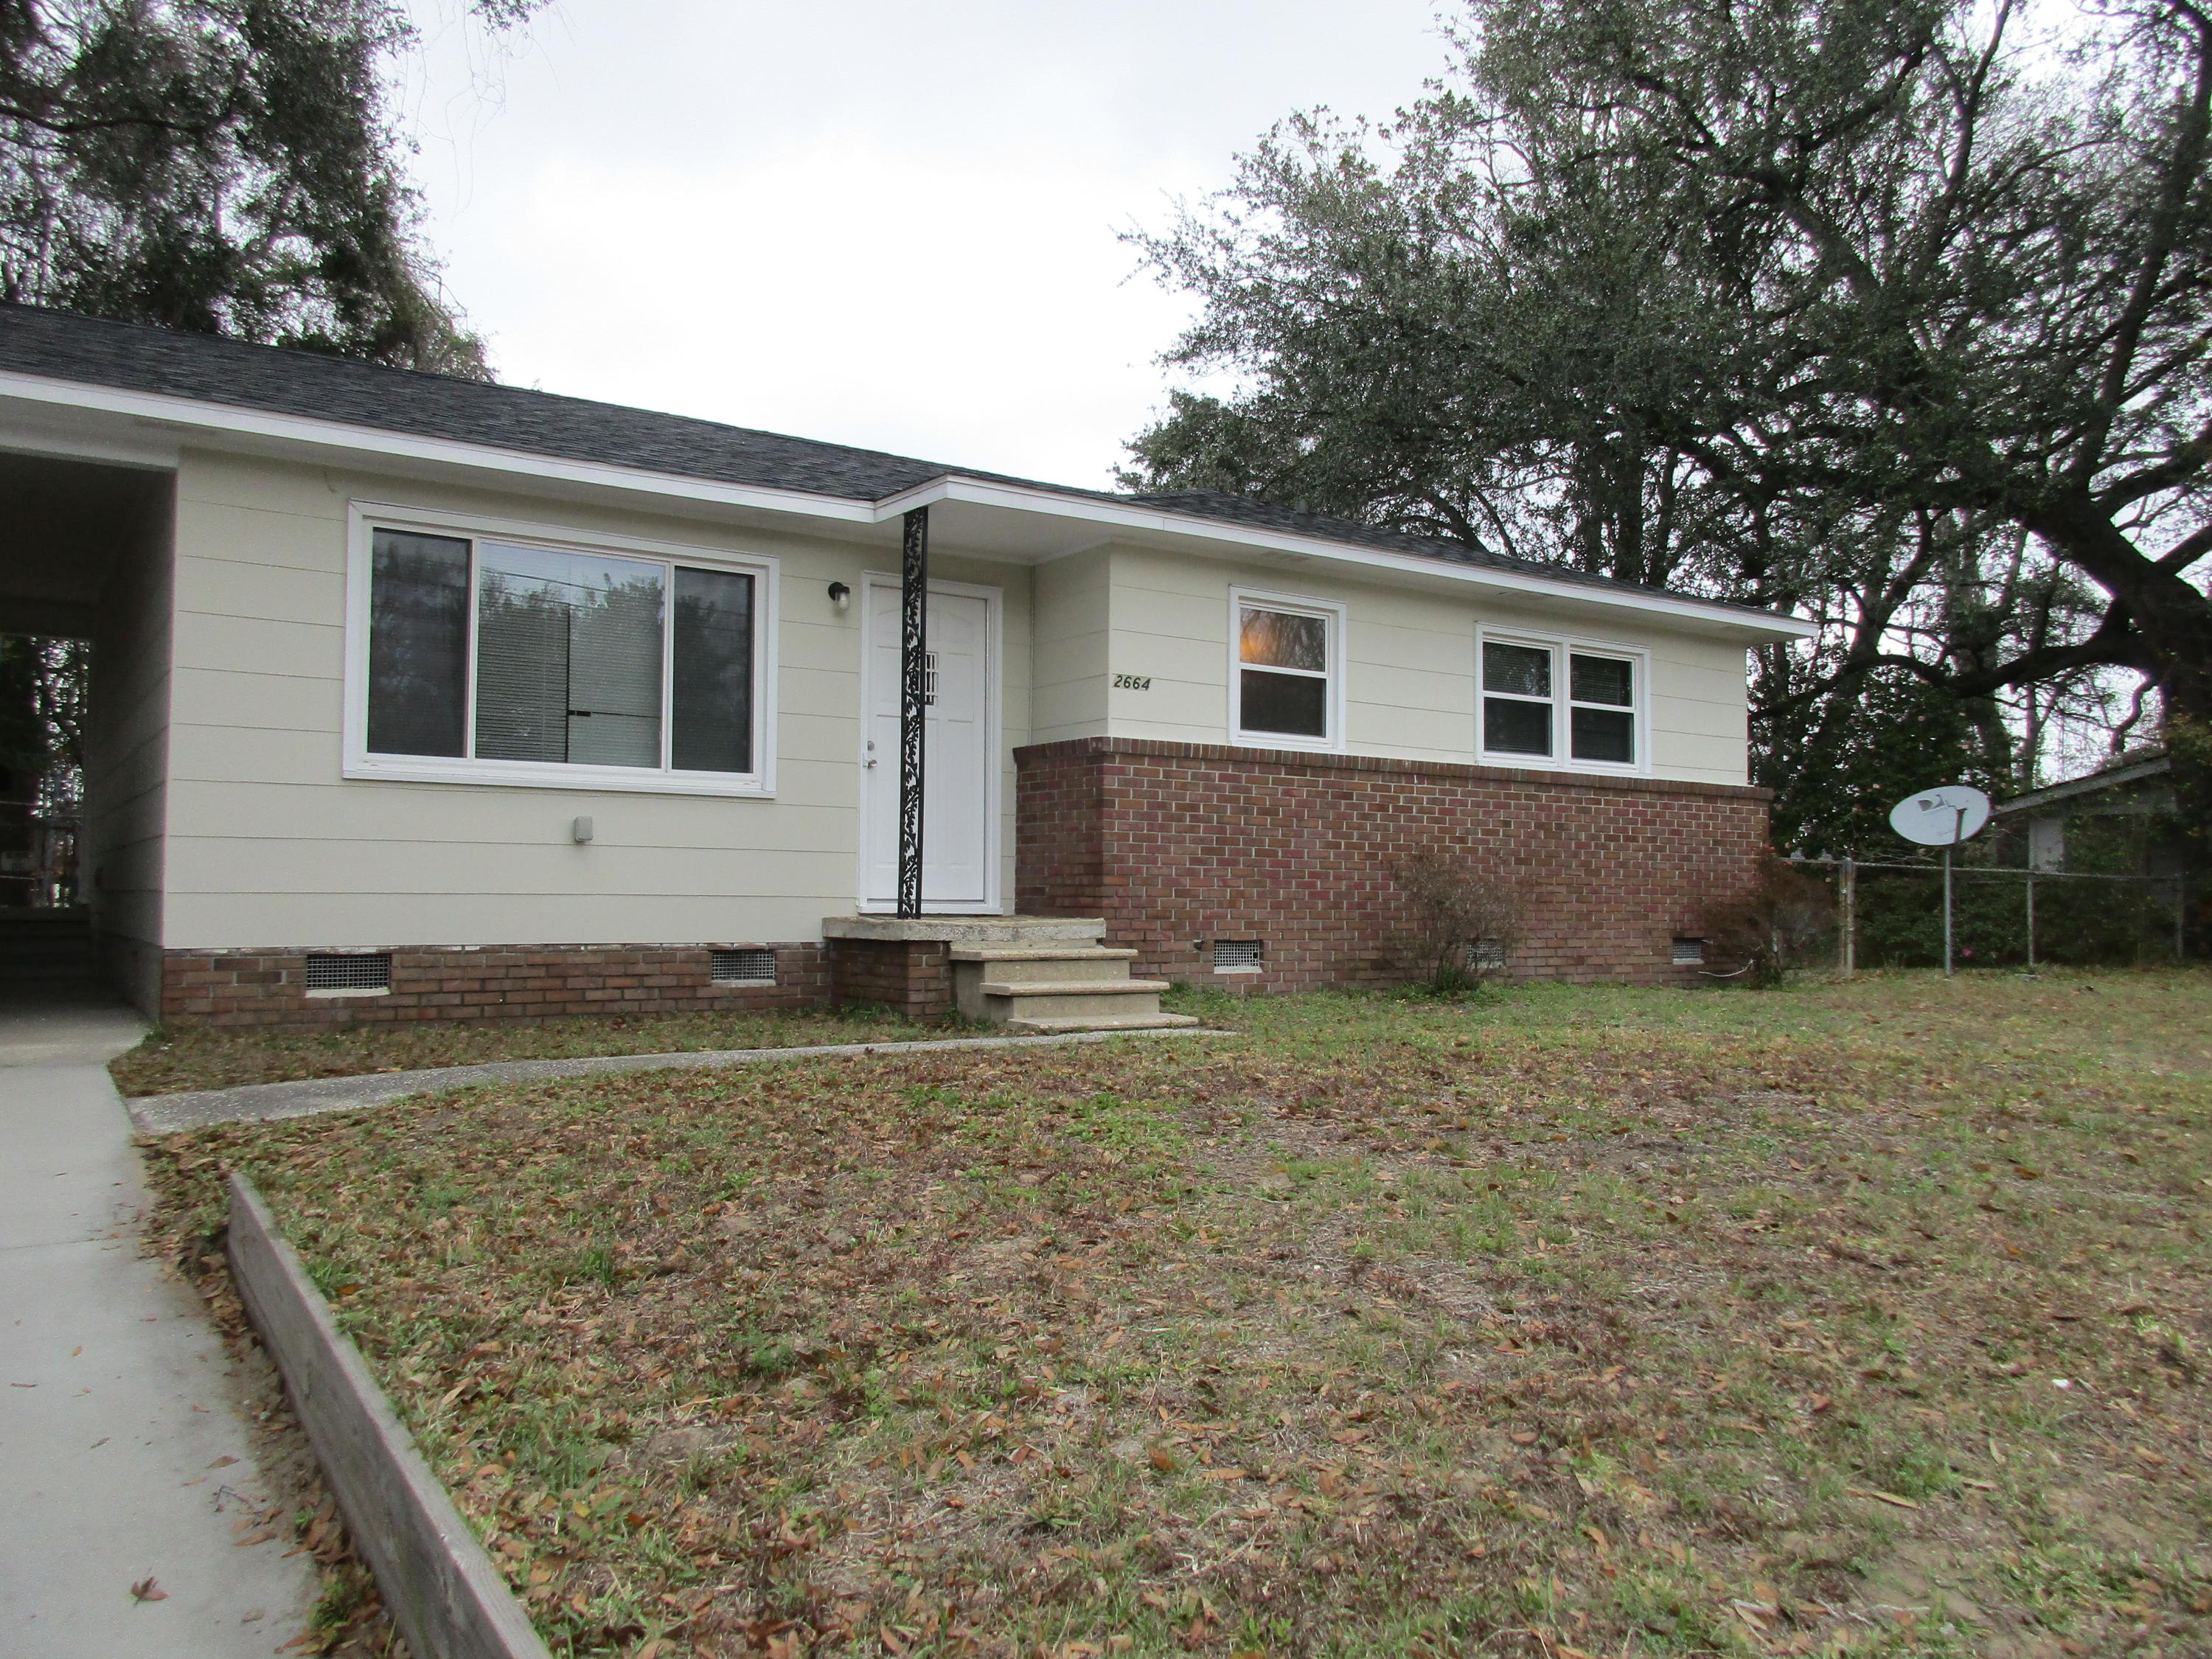 2664 Orchid Avenue North Charleston, Sc 29405